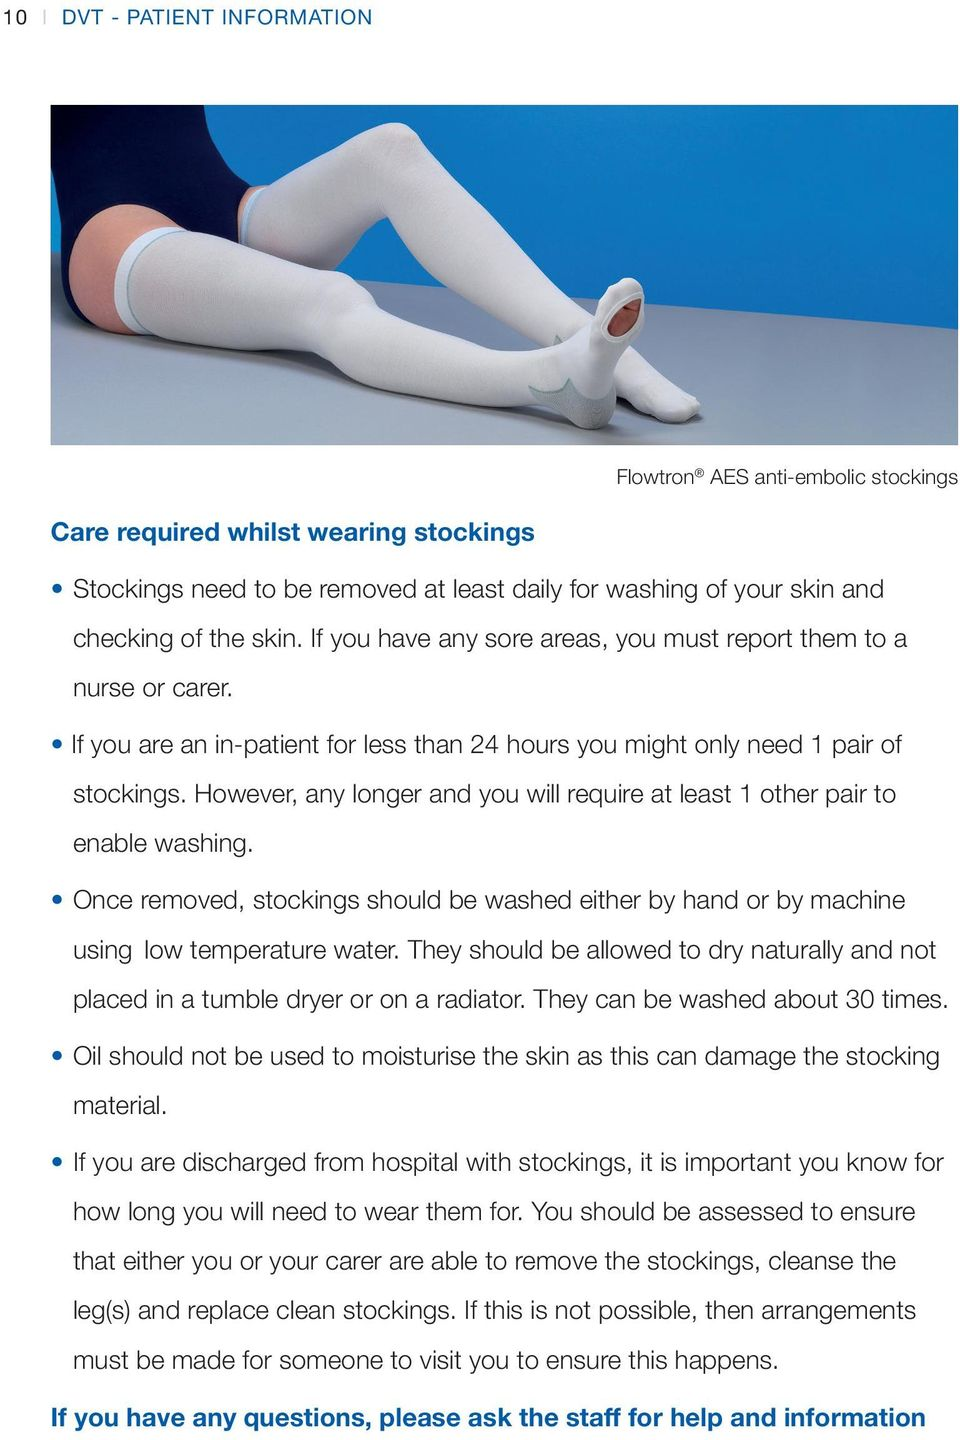 However, any longer and you will require at least 1 other pair to enable washing. Once removed, stockings should be washed either by hand or by machine using low temperature water.